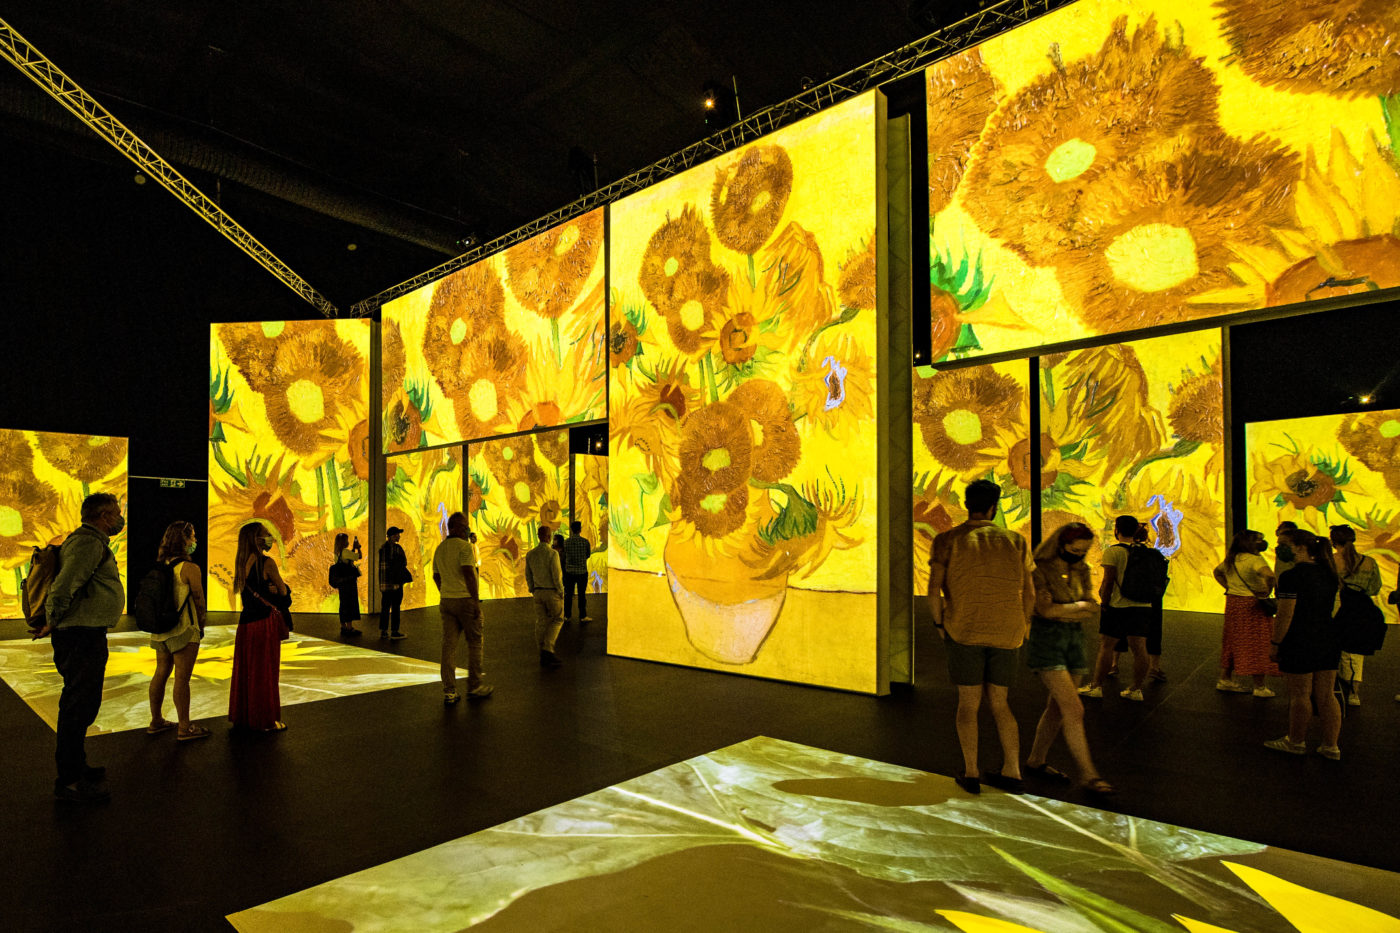 A big exhibition space divided by walls that work as screens, where Van Gogh's Sunflowers are projected. Audience members move around the space, getting different views of the artwork (from the picture as whole to detailed close-ups).